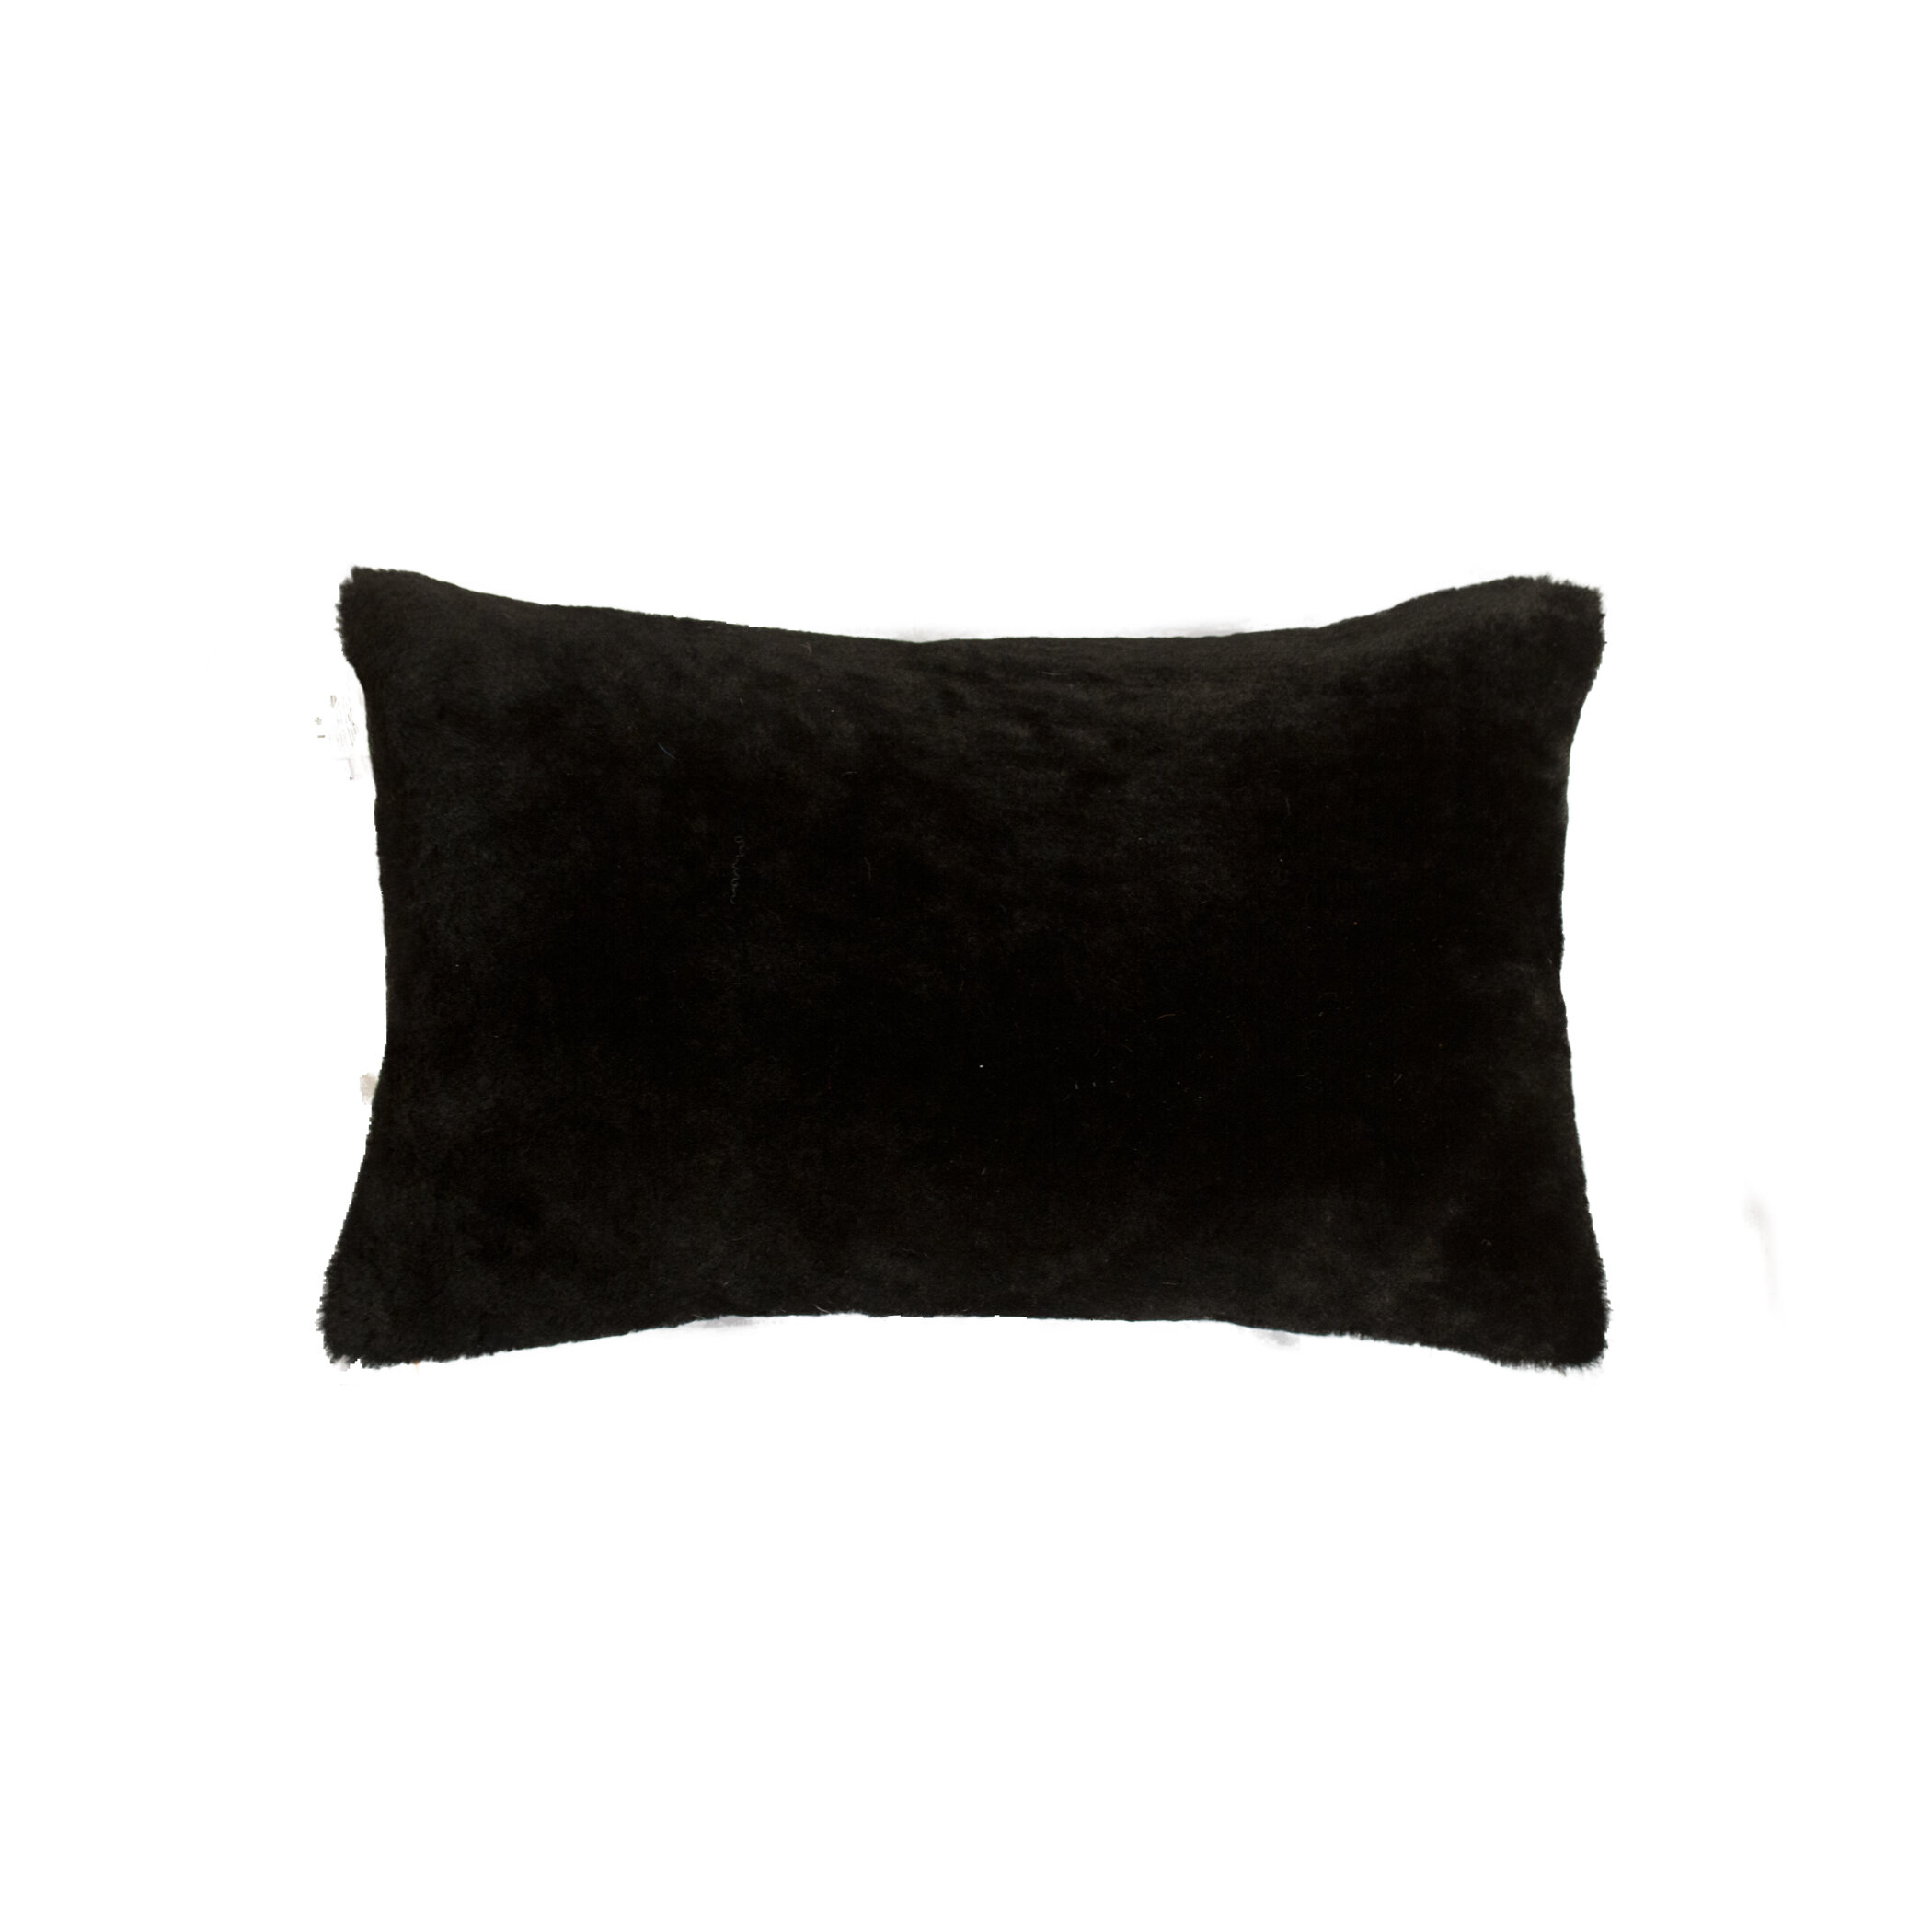 Union Rustic Allura Rectangular Leather Pillow Cover And Insert Reviews Wayfair